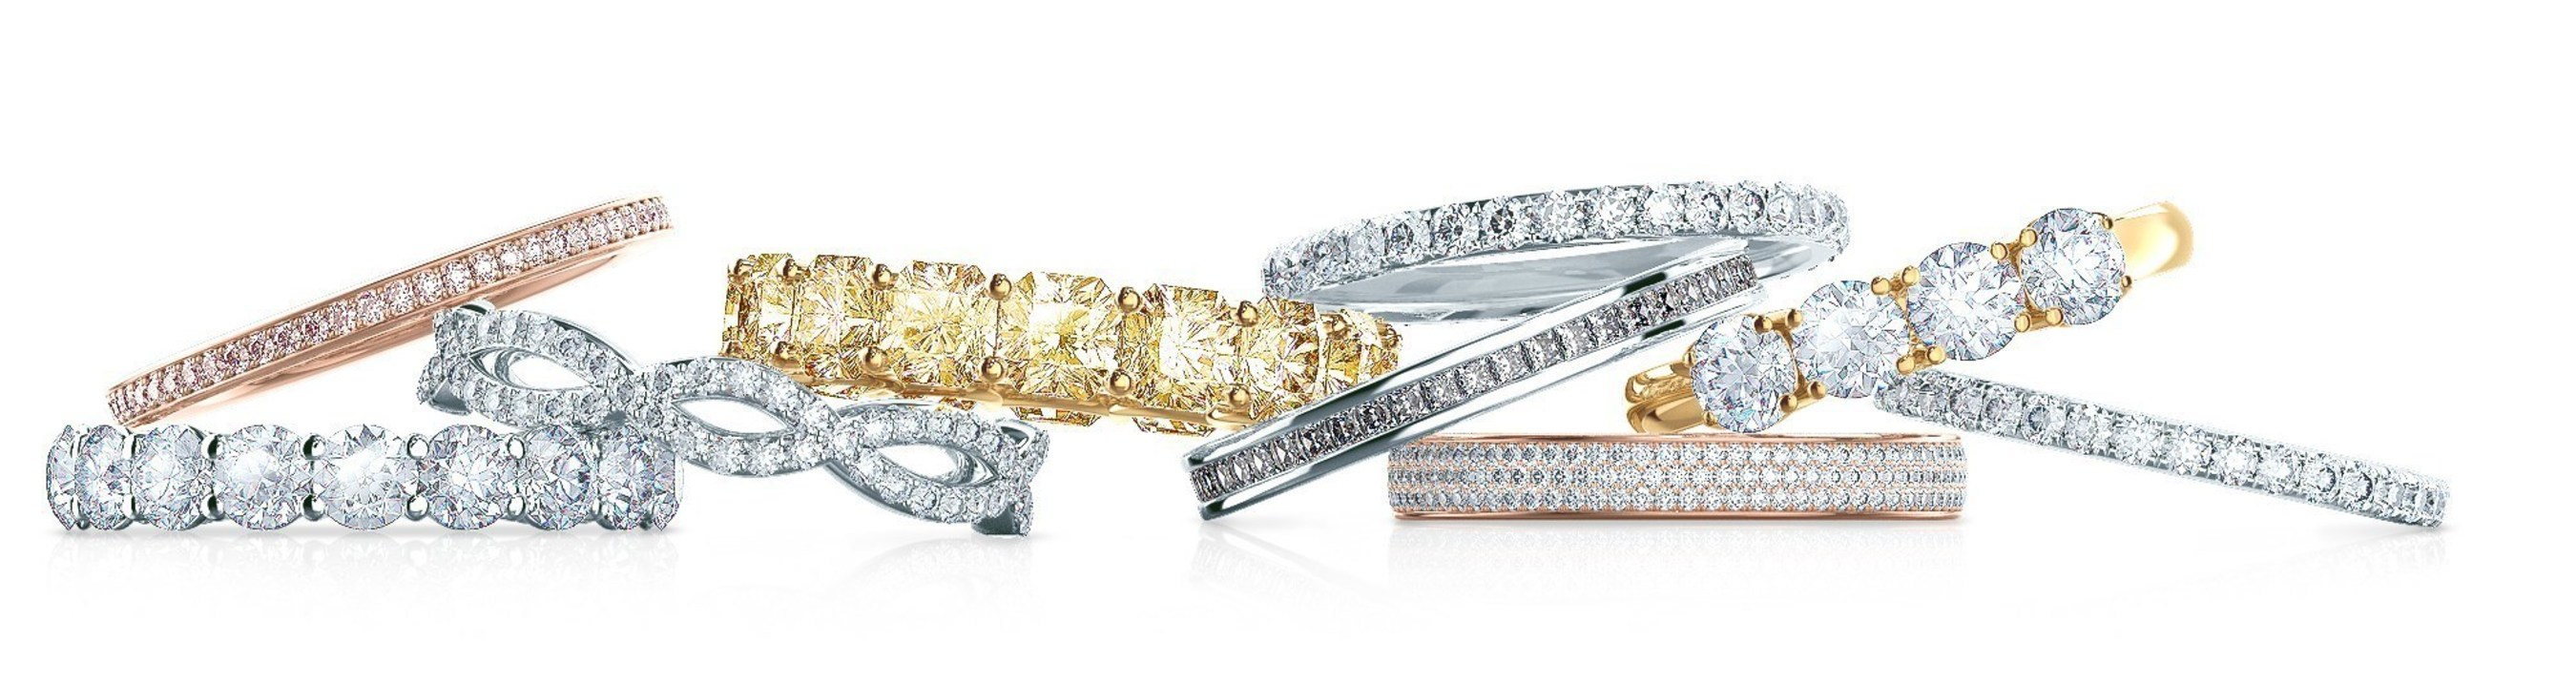 Ada Diamonds can meet each client's vision with masterful skill, ethical luxury materials and spectacular artistry.